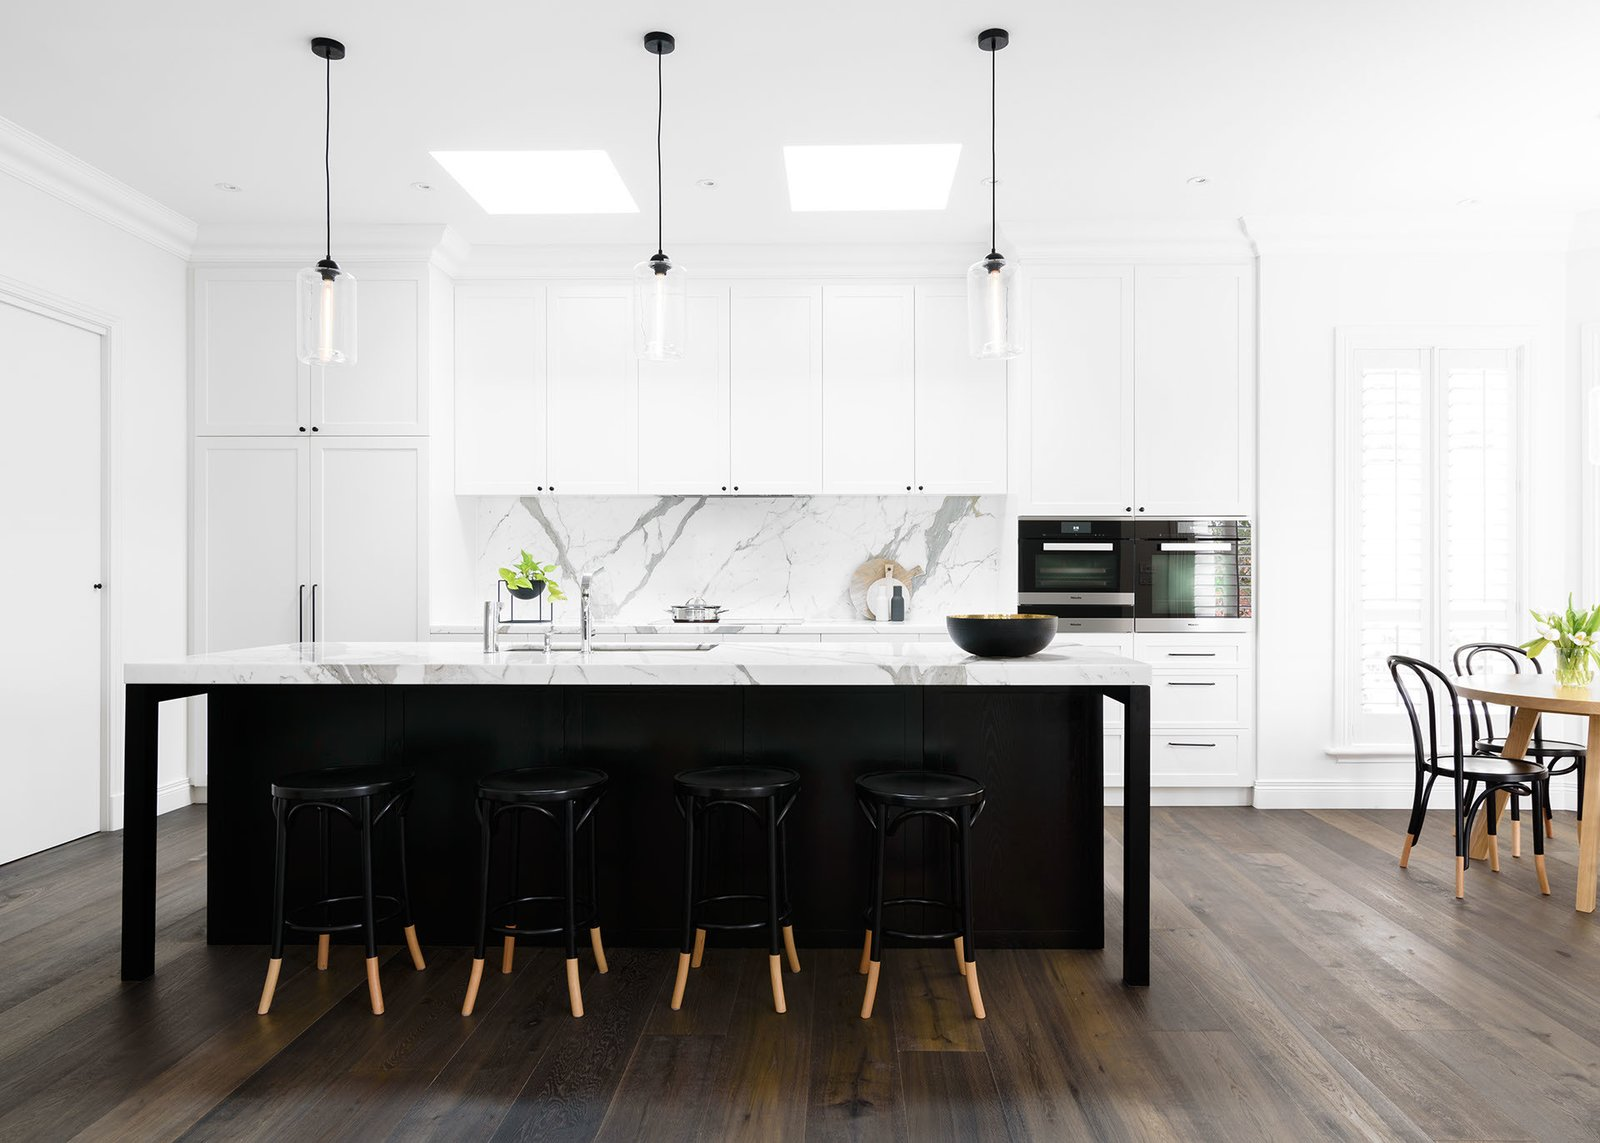 Kitchen, Marble, White, Wood, Medium Hardwood, Stone Slab, Pendant, Ceiling, Recessed, Dark Hardwood, Wall Oven, Cooktops, Range, Drop In, and Undermount Kitchen  Best Kitchen Ceiling White Wall Oven Recessed Drop In Pendant Range Photos from PRK Residence